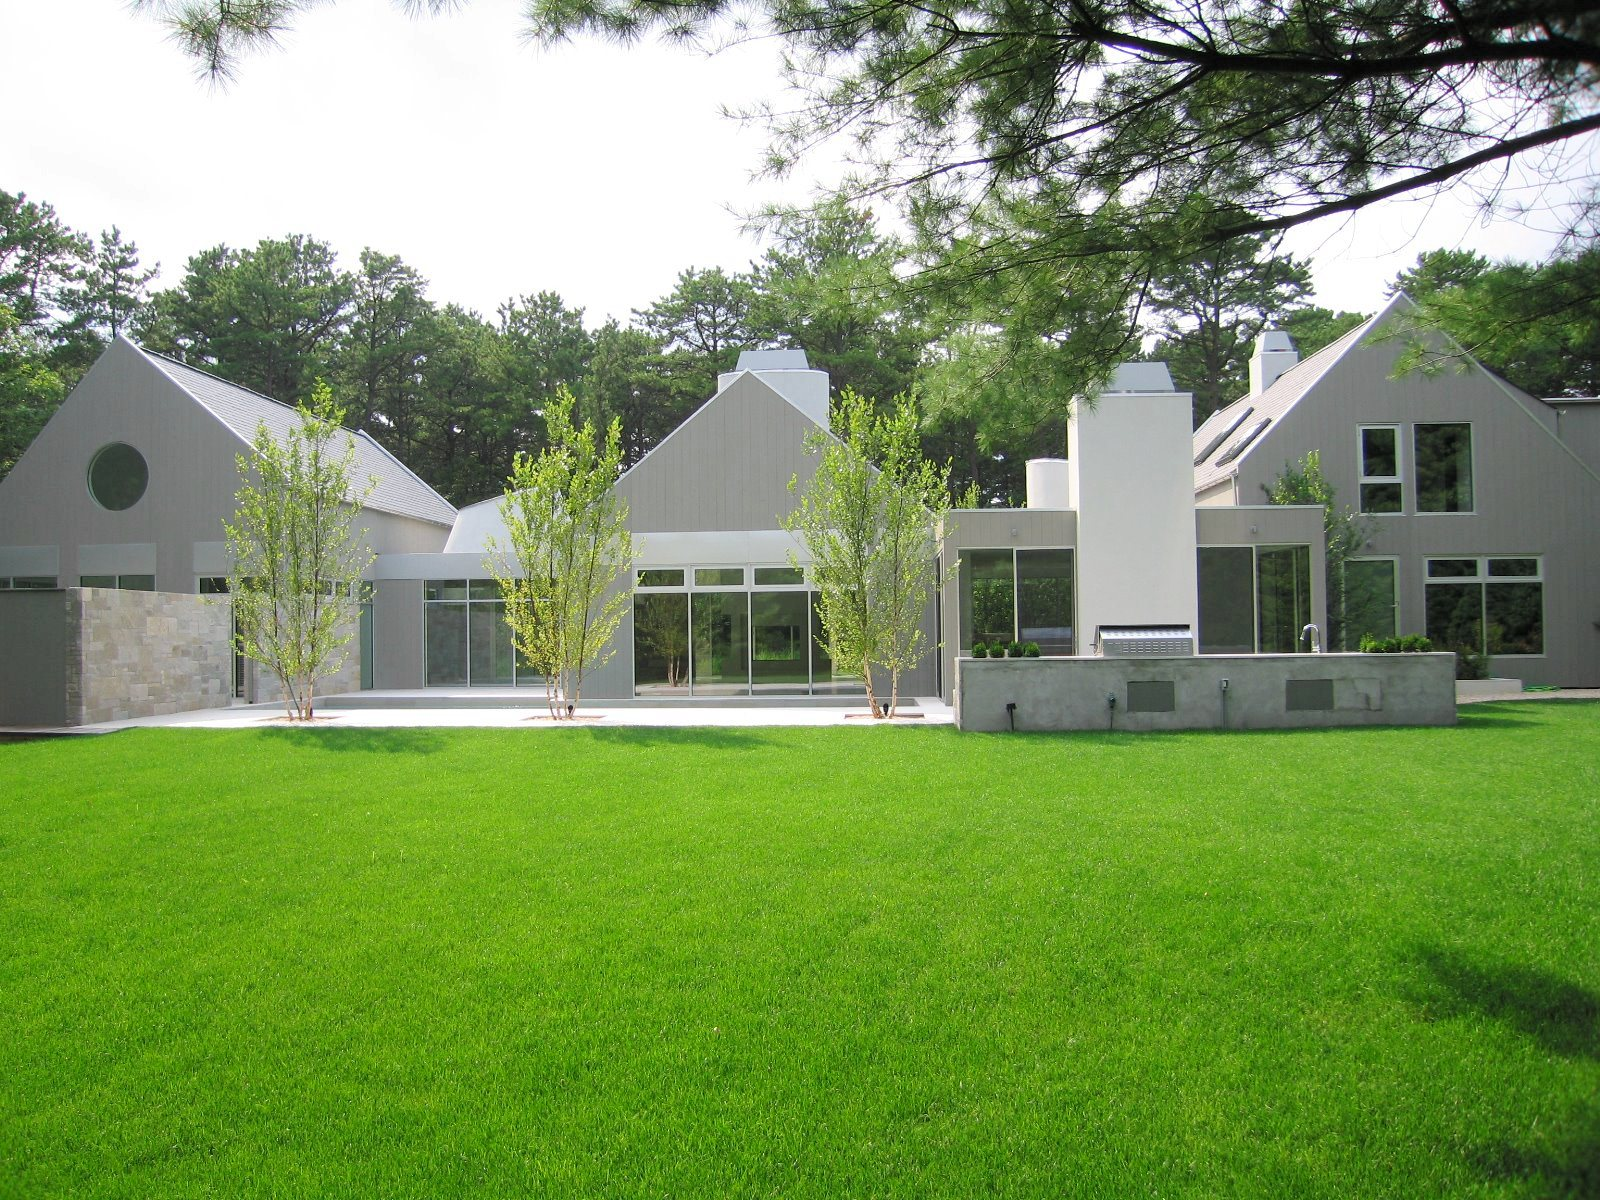 See This House White On White In A Modern Hamptons